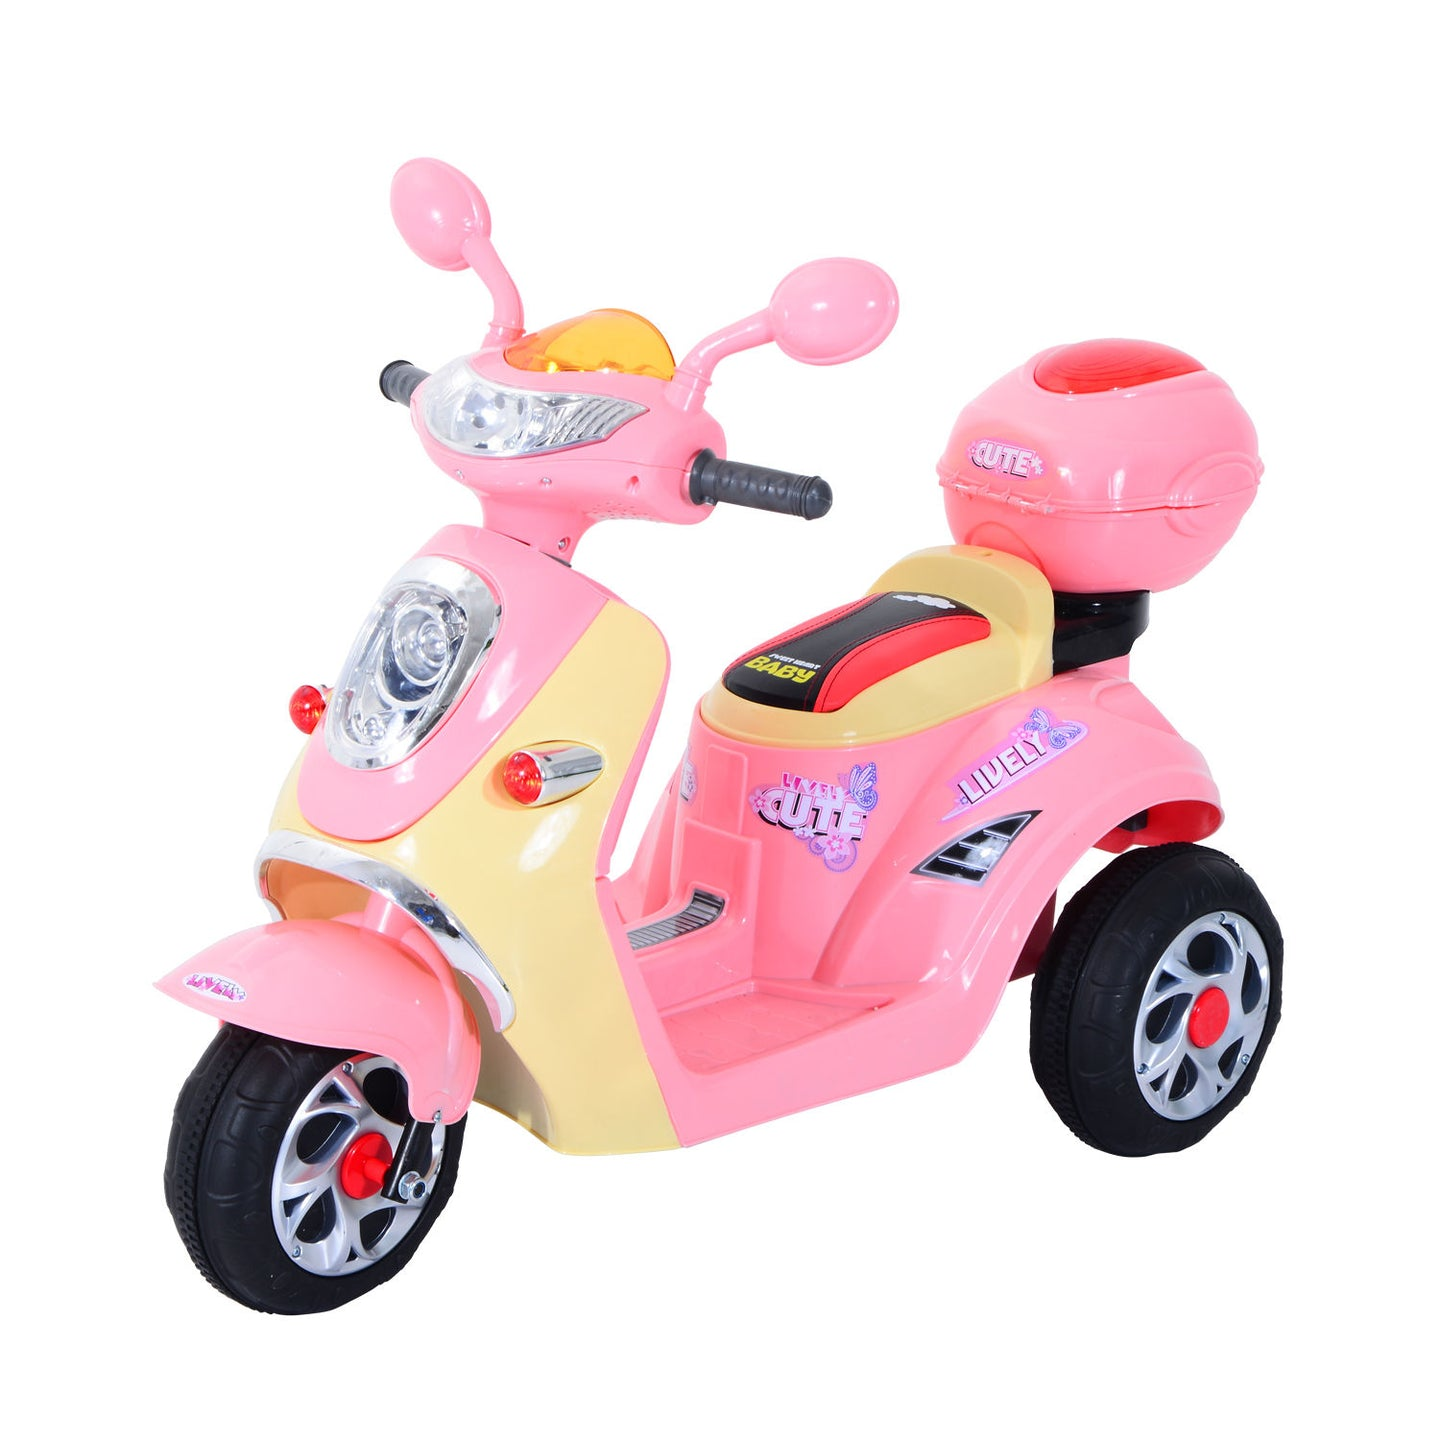 HOMCOM Electric Ride on Toy Tricycle Car-Pink